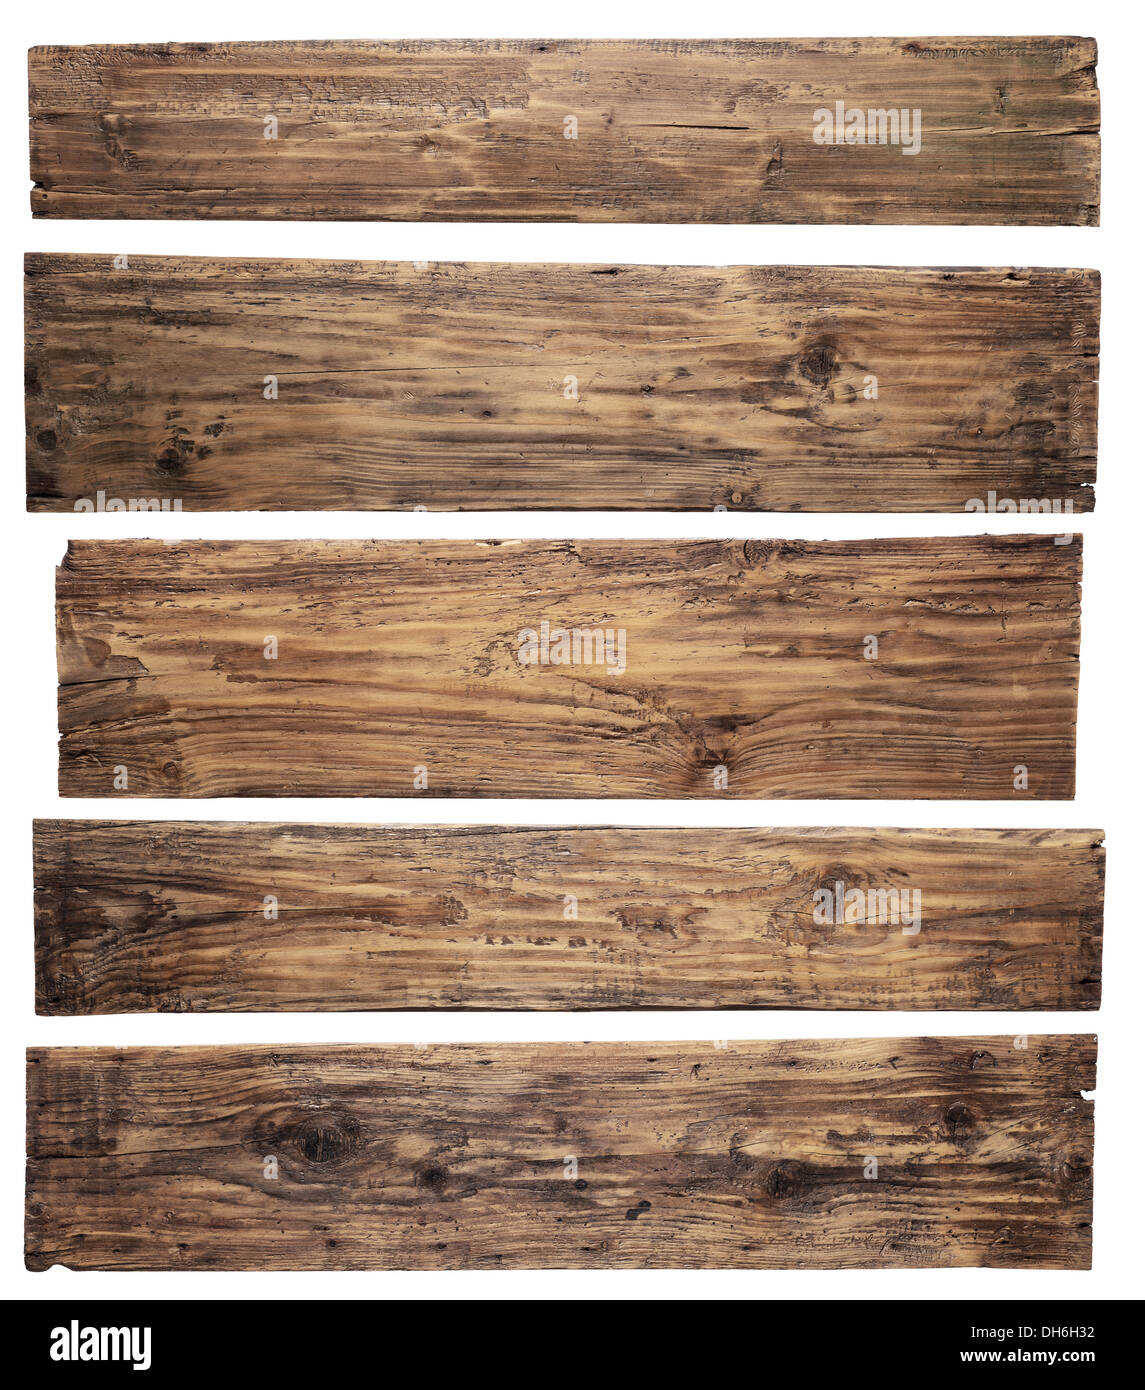 Old wooden planks isolated on white background - Stock Image